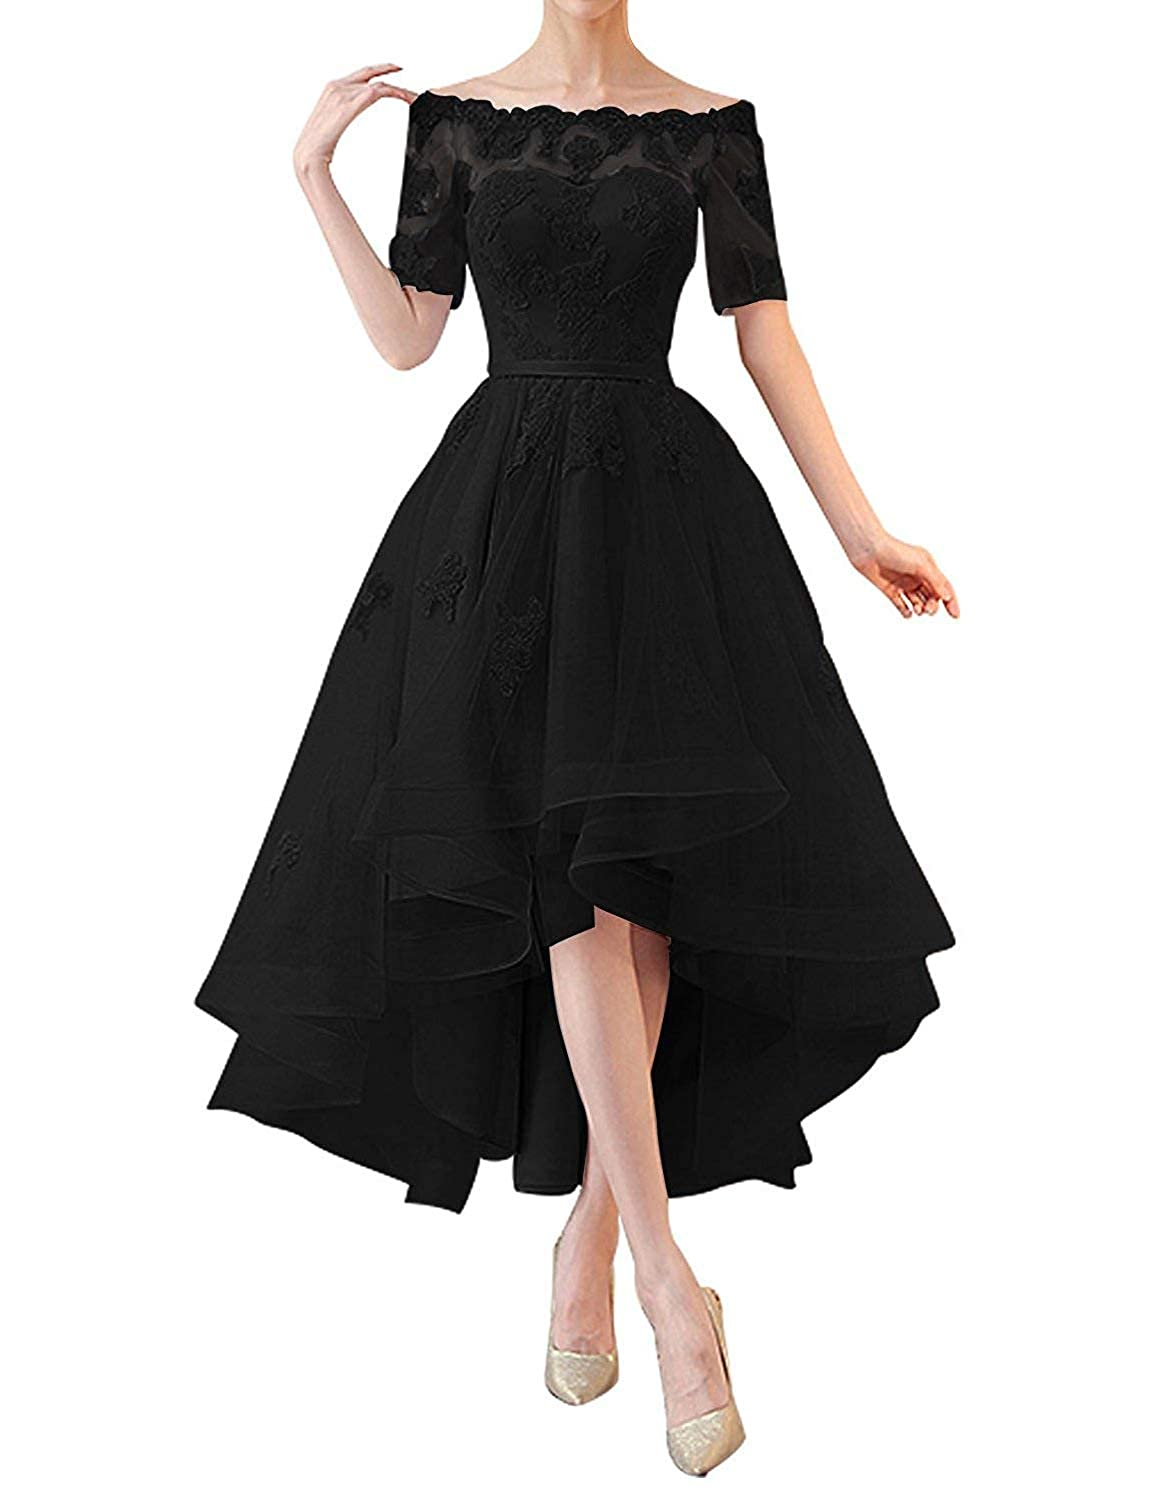 e18721ea08 vimans Women s High Low Prom Dresses 2019 Off Shoulder Wedding Party Gown  P05 at Amazon Women s Clothing store